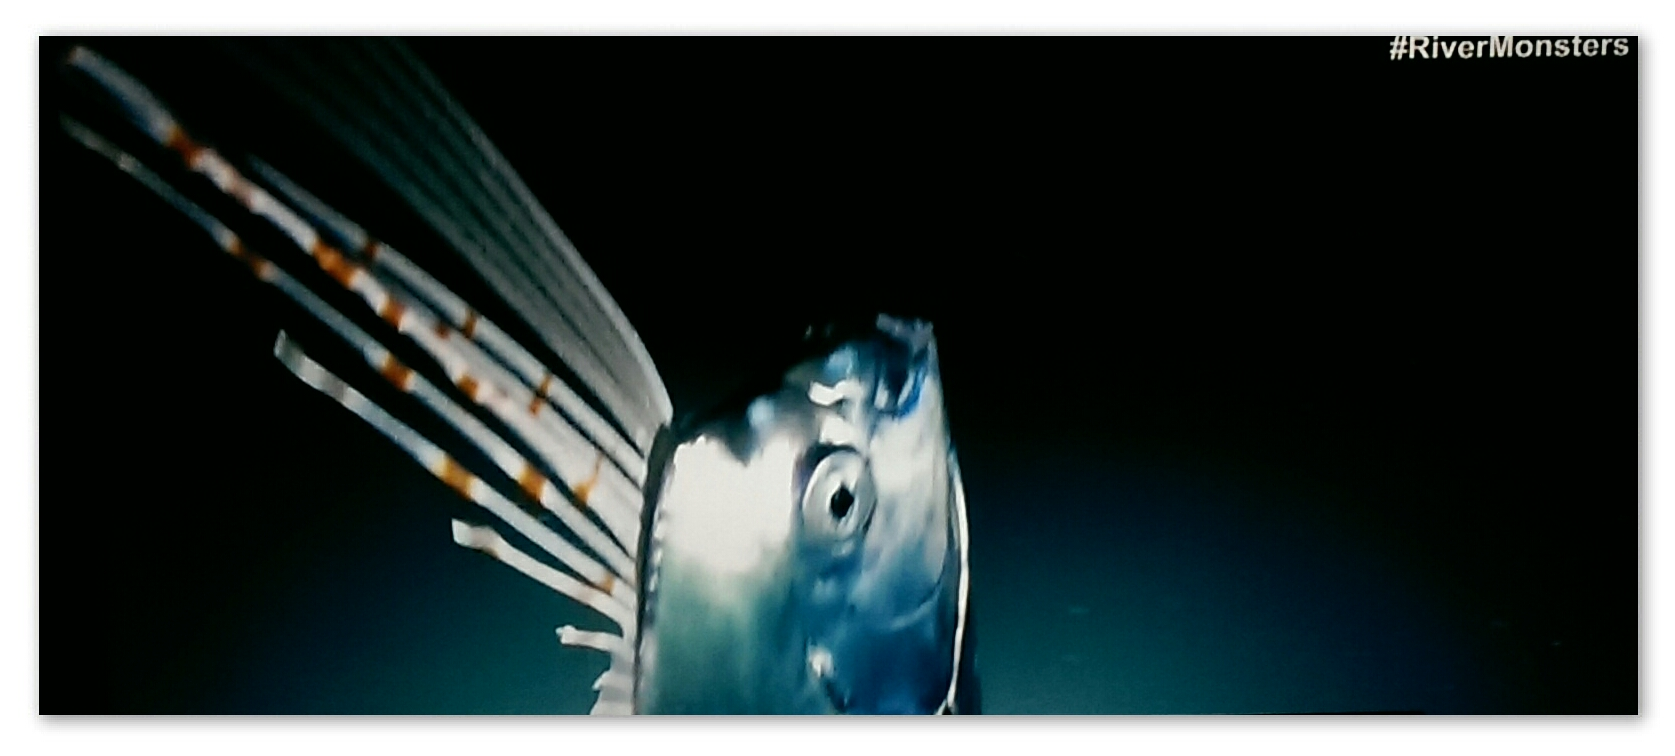 Image of an Oarfish from the River Monsters episode 'Deep Sea Demon'